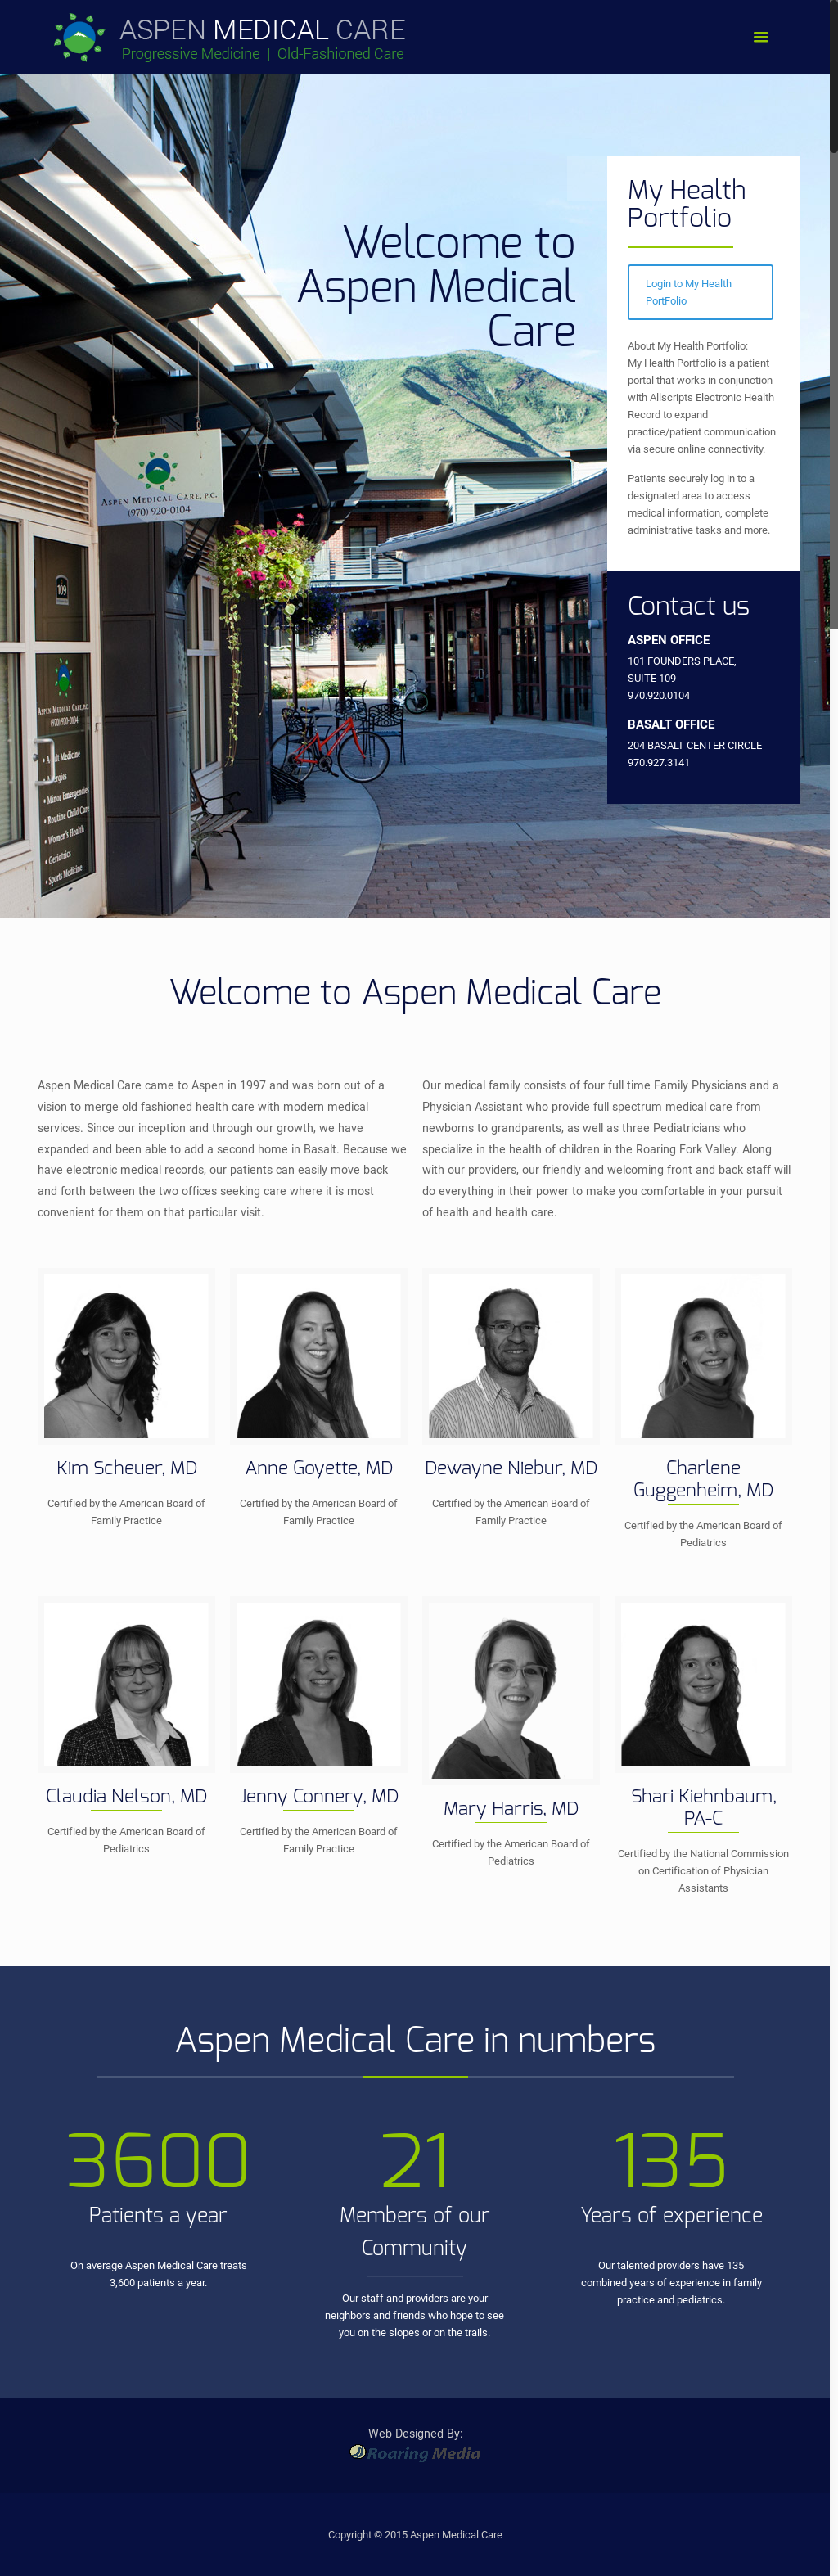 Aspen Medical Care Competitors, Revenue and Employees.